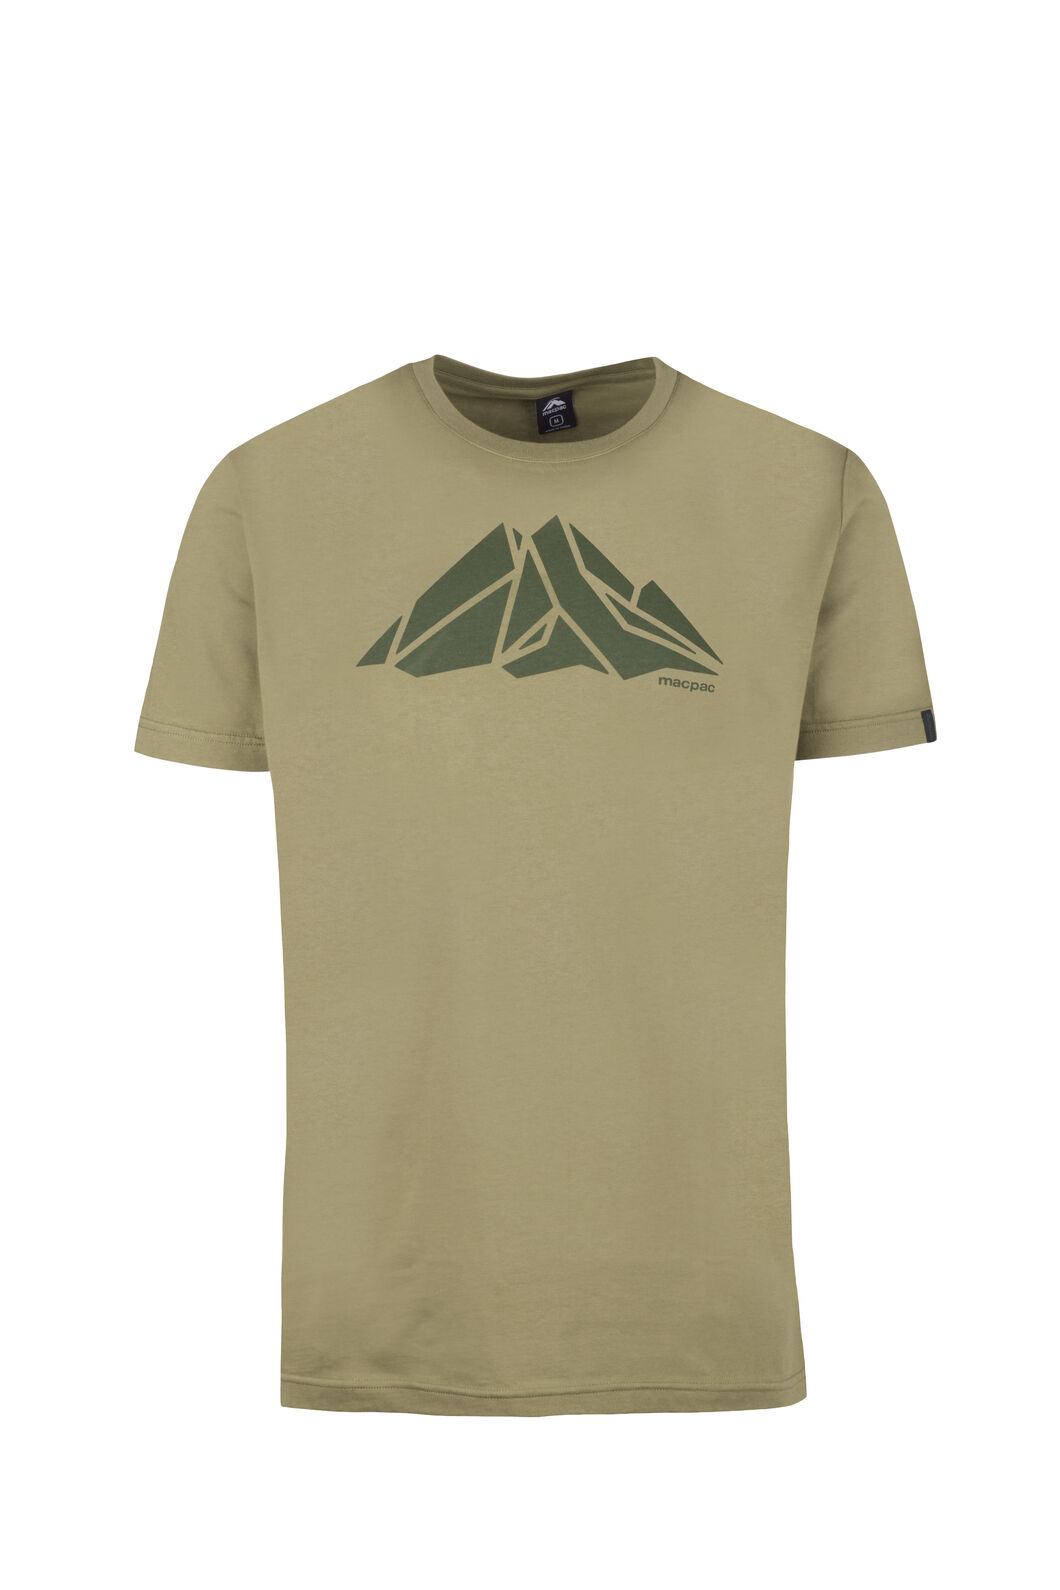 Macpac Screen Print Organic Cotton Tee - Men's, Loden Green, hi-res